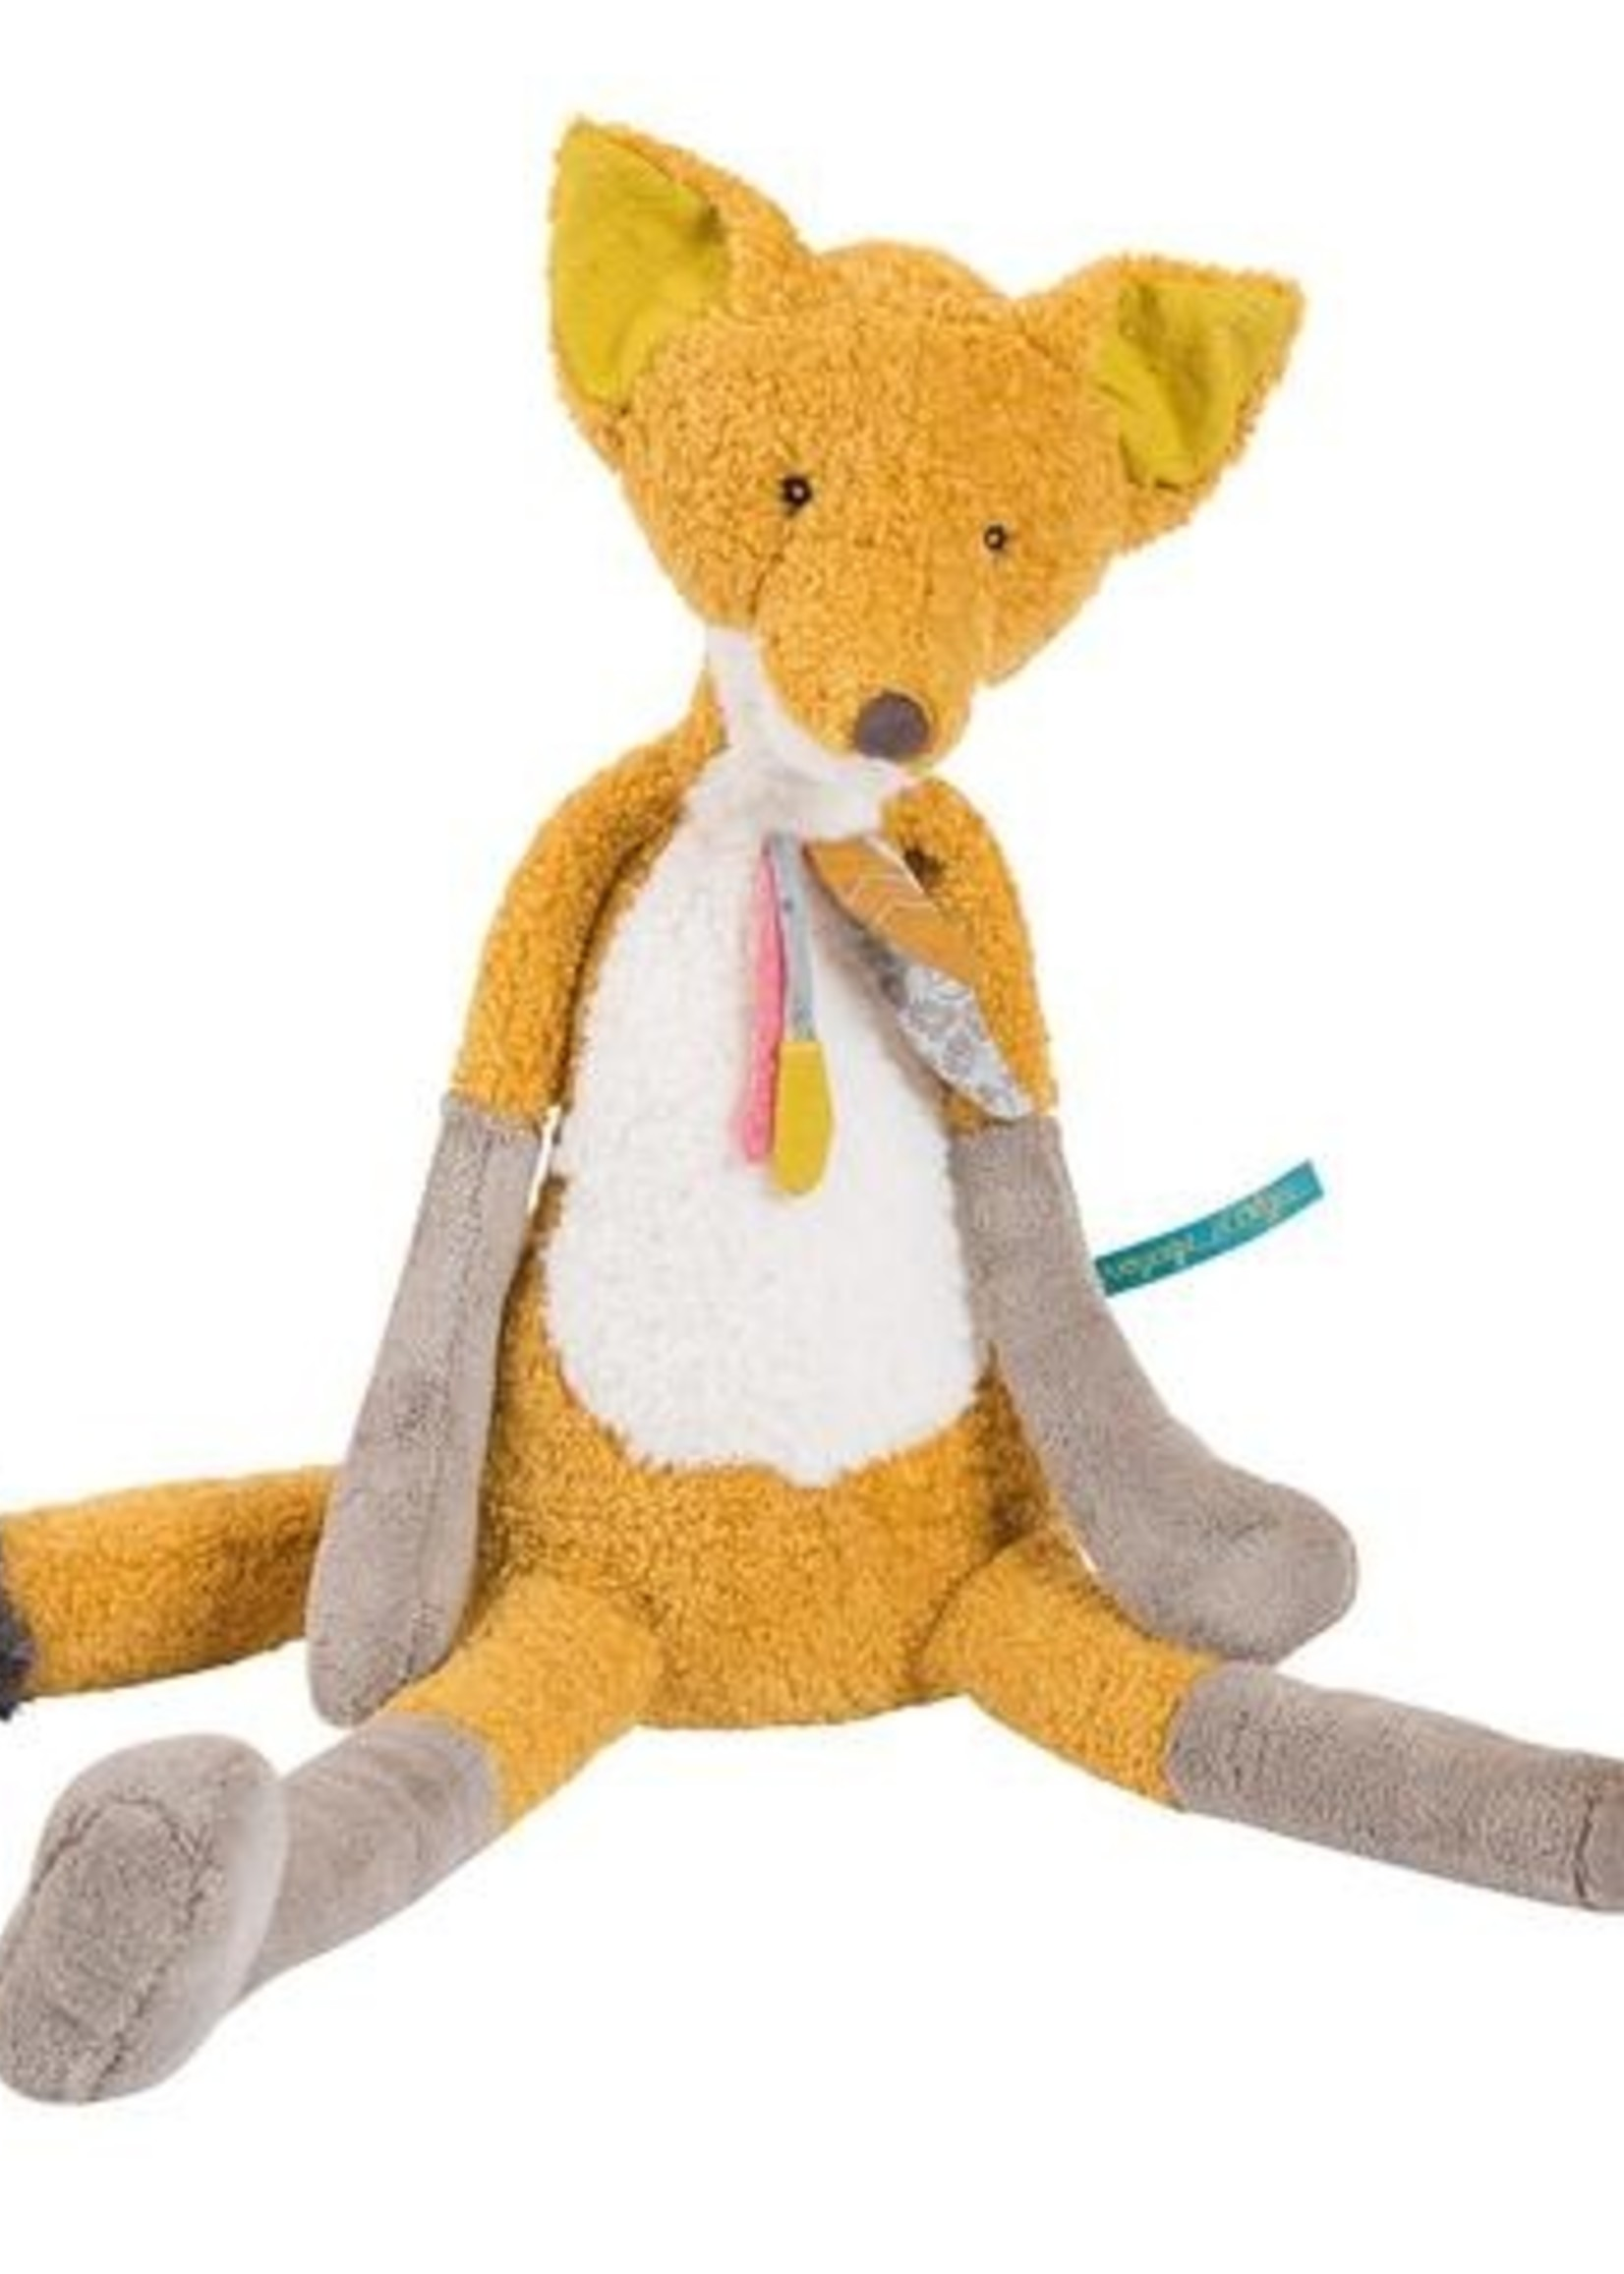 Voyage D'Olga - Chaussette fox activity toy 35cm (CASELOT 3) - Moulin Roty